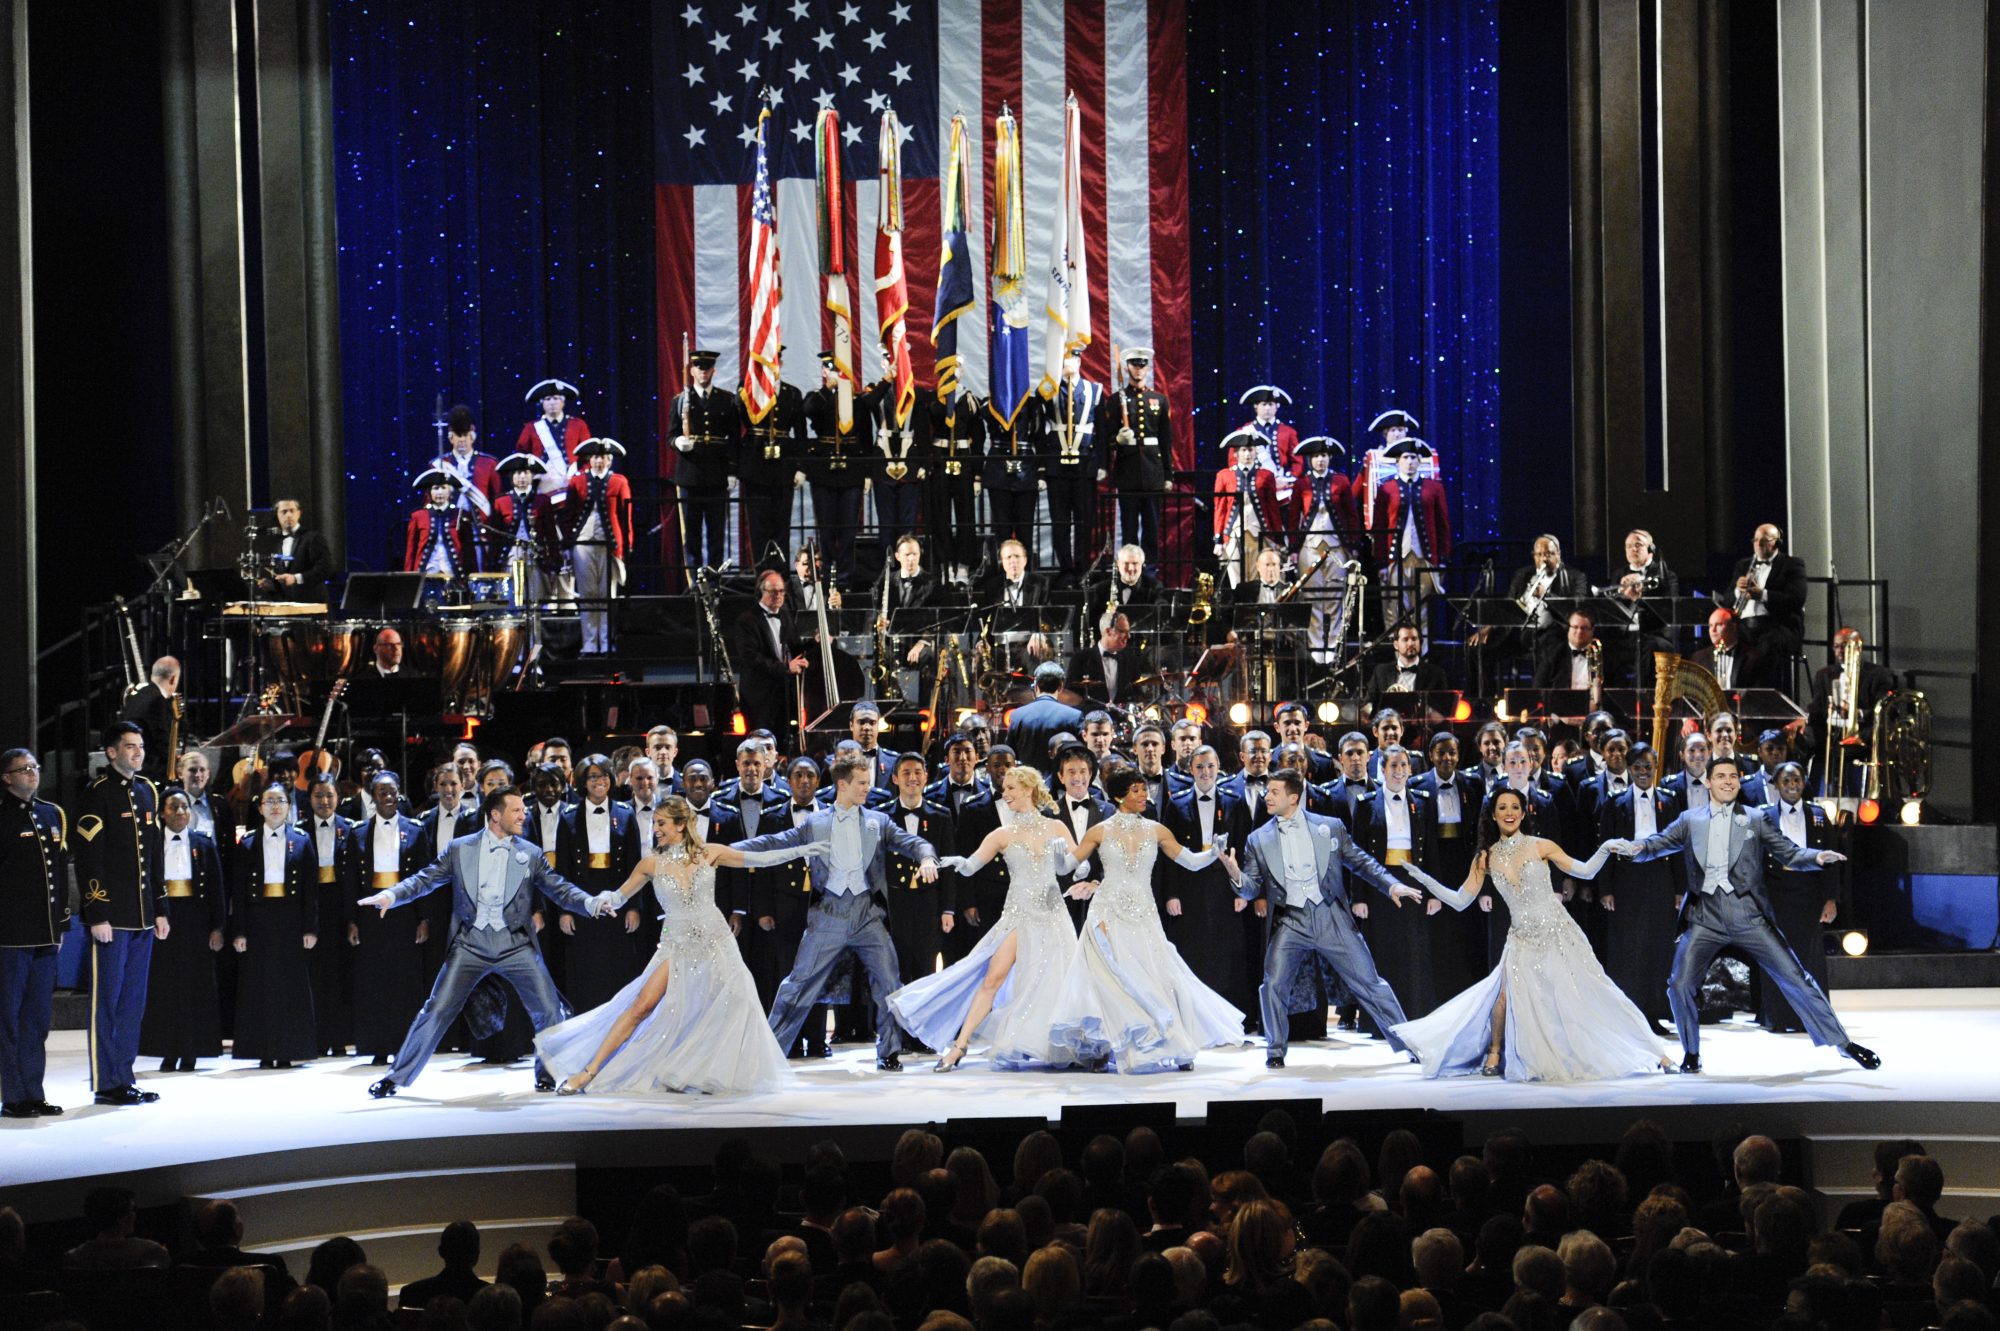 U.S. Army Chorus, the U.S. Army Color Guard, the U.S. Naval Academy Gospel Choir, the Old Guard Fife and Drum Corps and the United States Air Force Band's Ceremonial Brass